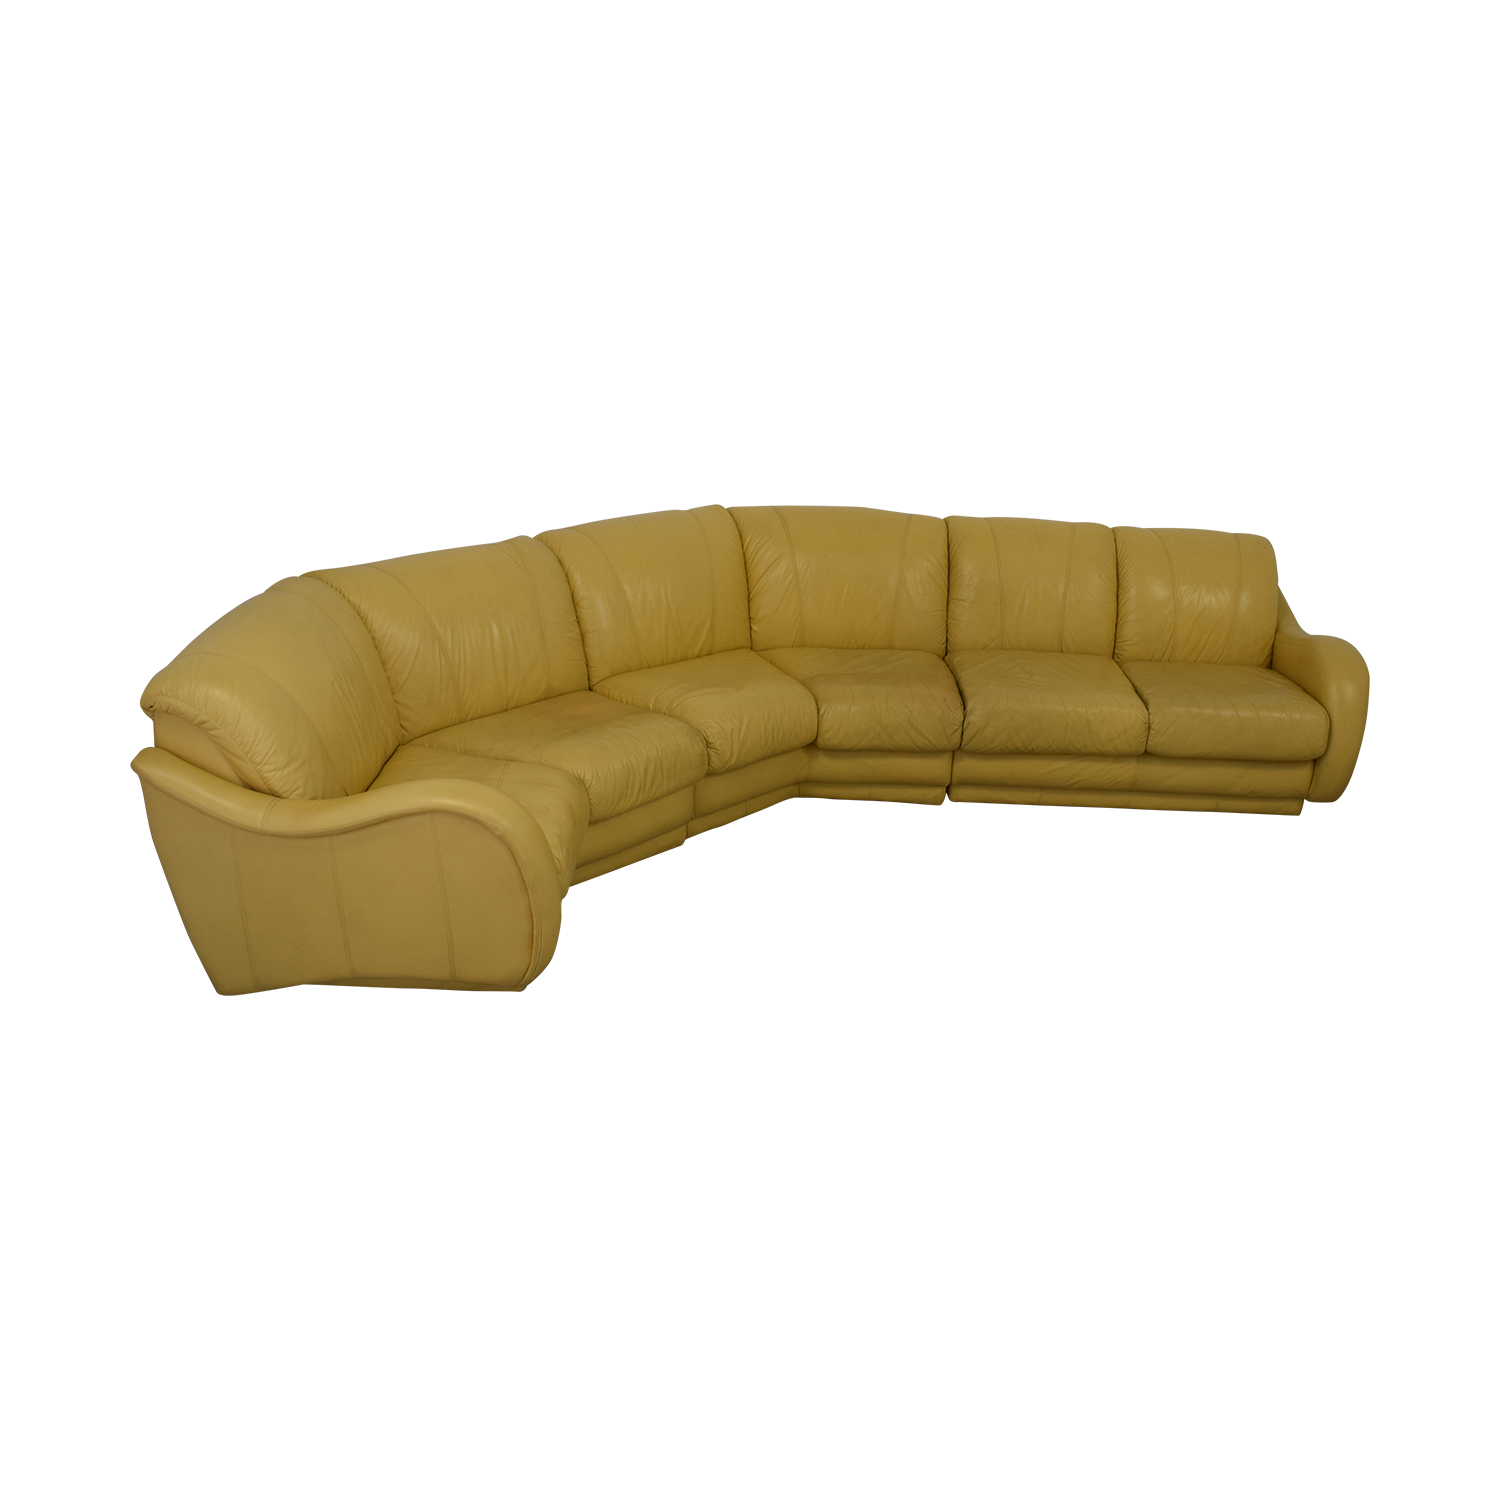 Leather Sectional Sofa second hand